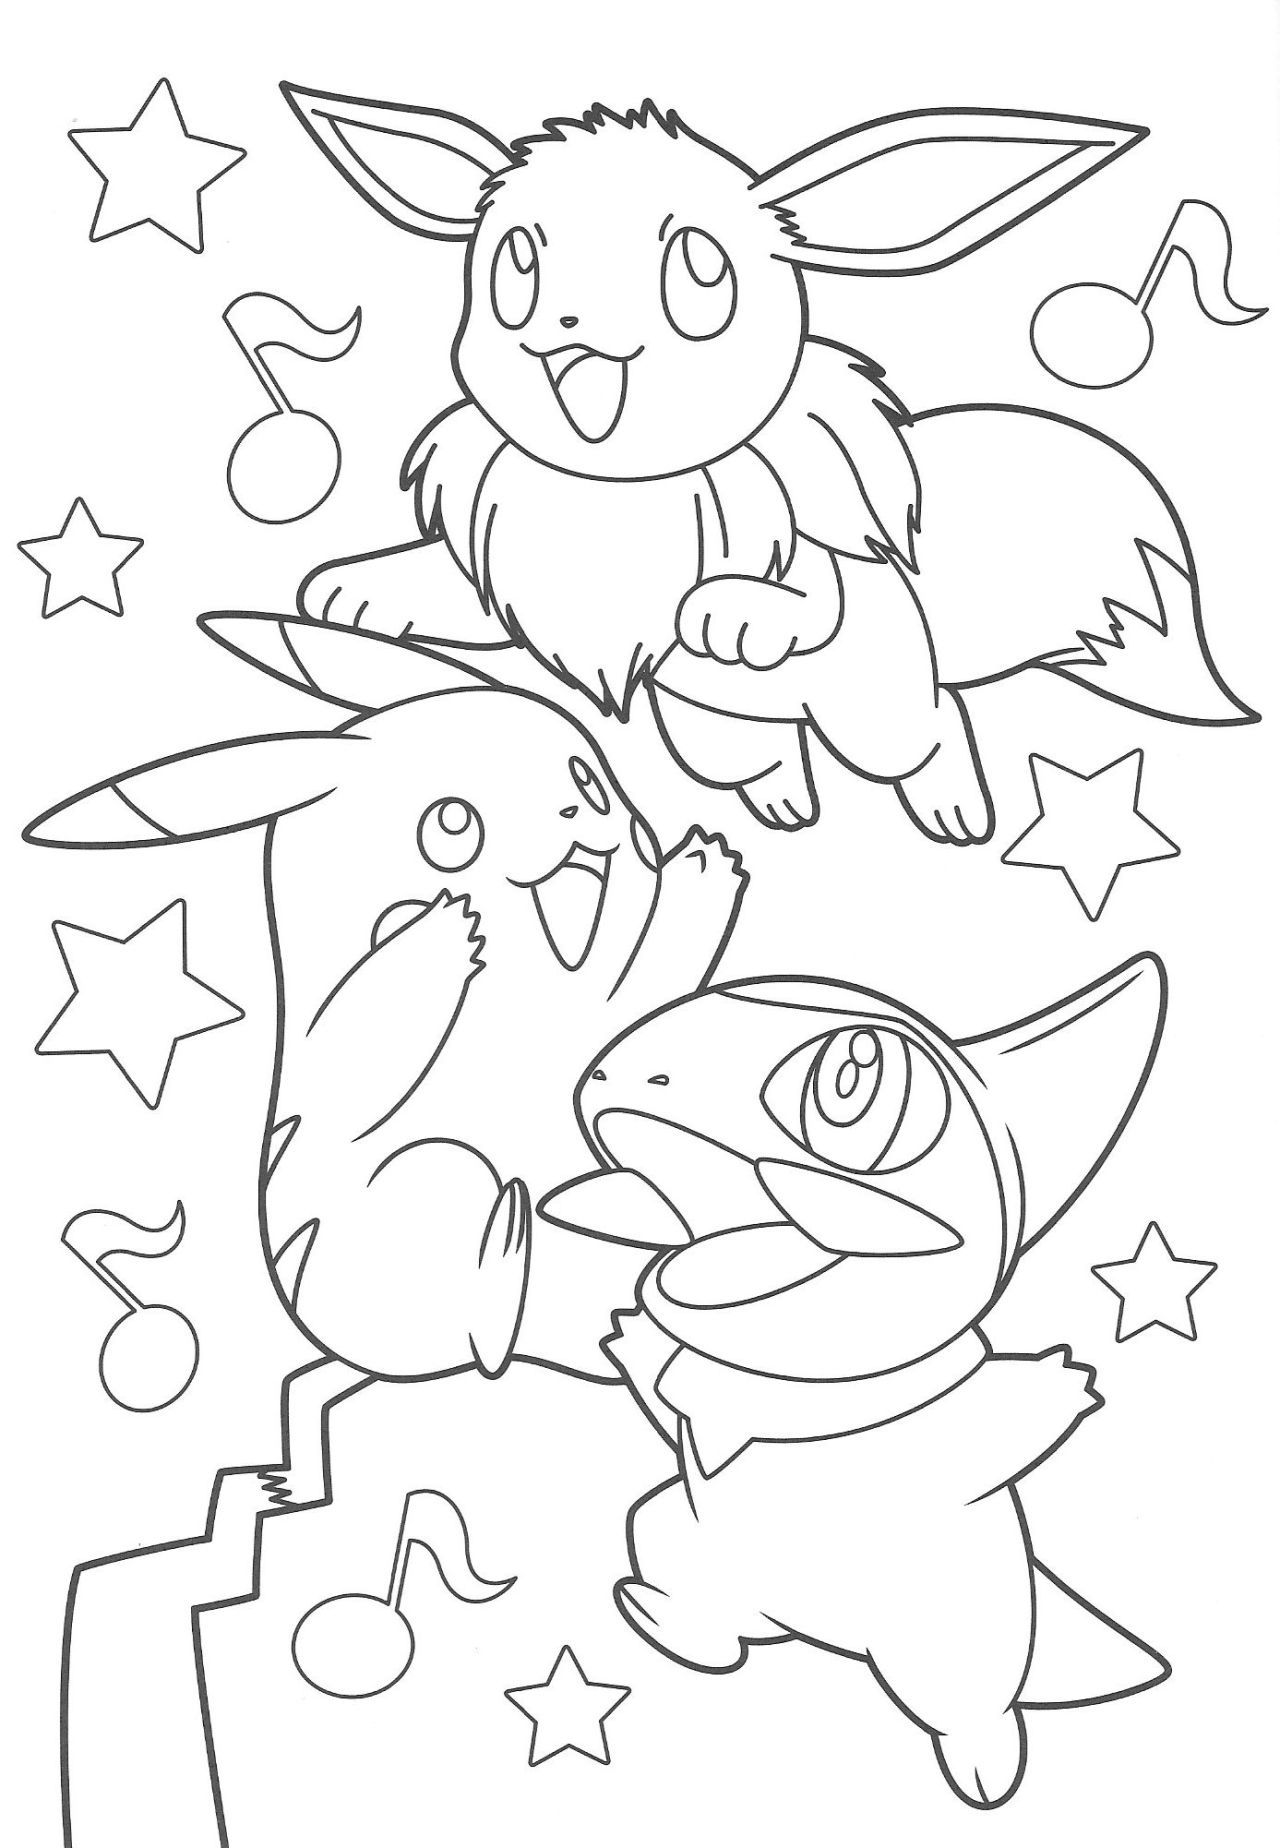 Pikachu and Eevee Friends coloring book Pokemon coloring